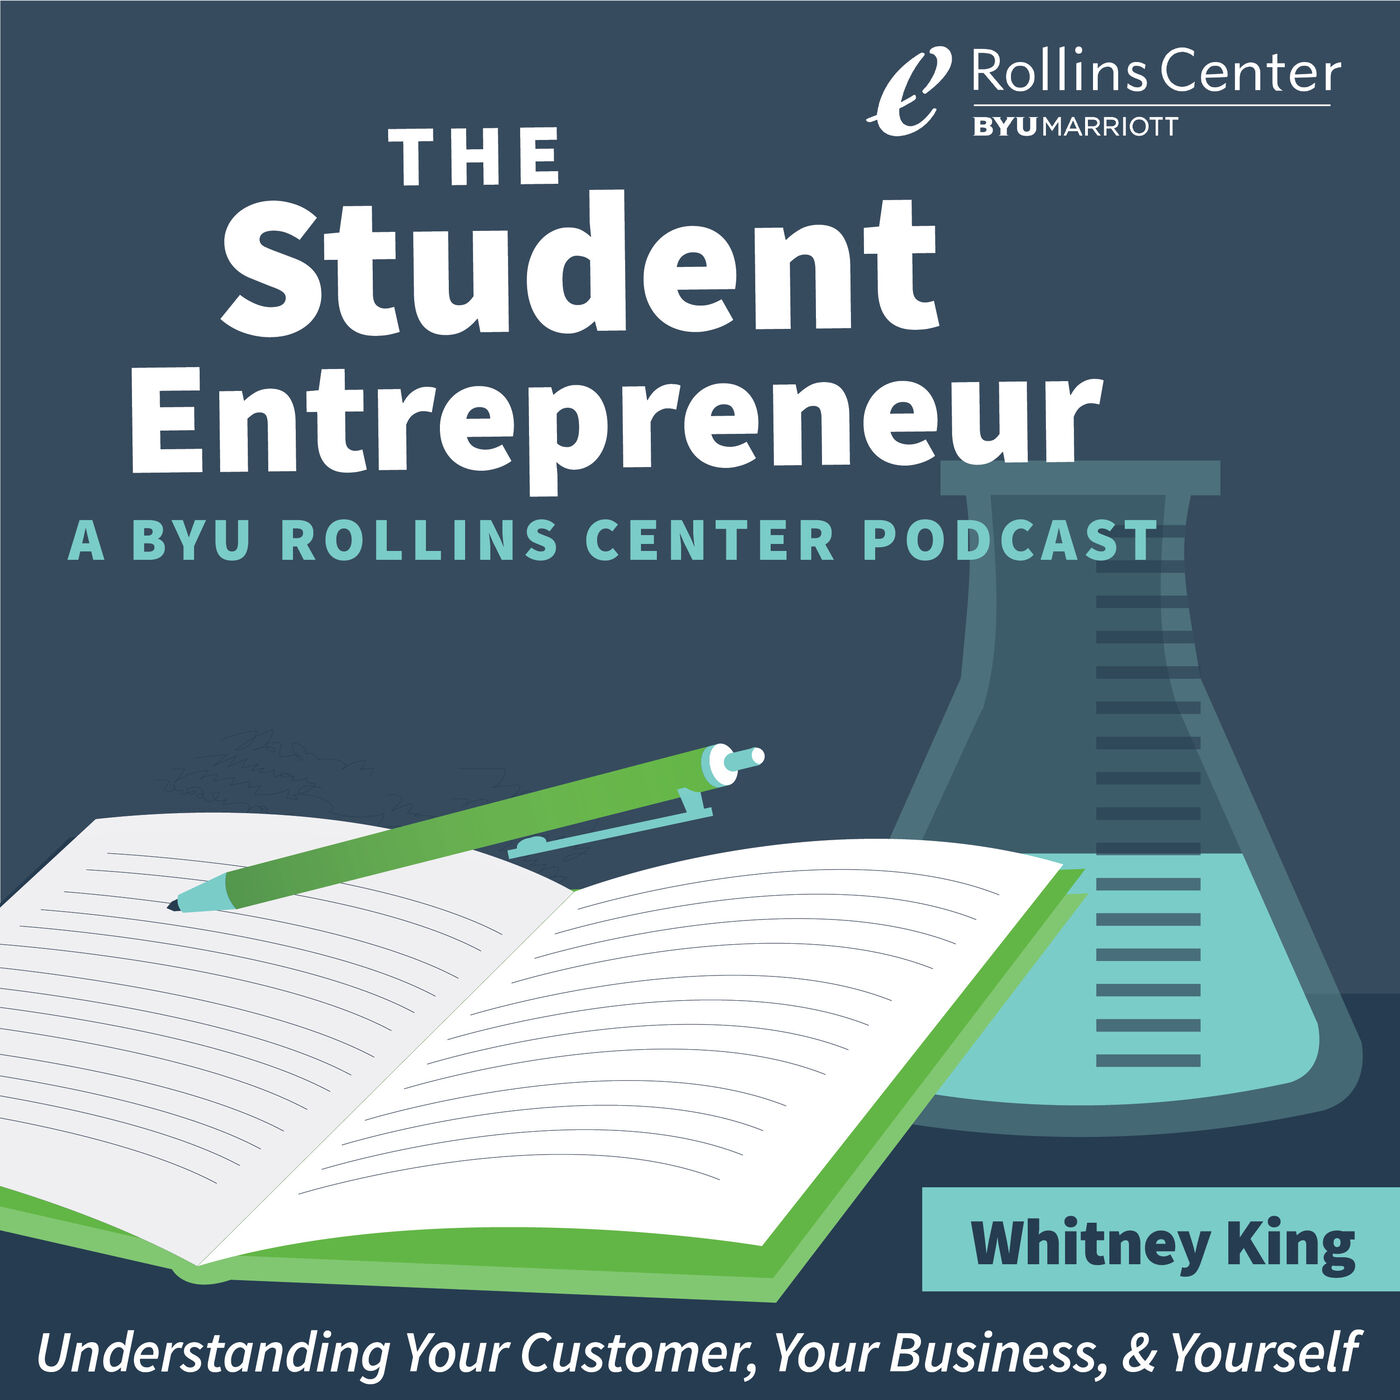 Whitney King - Understanding Your Customer, Your Business, and Yourself